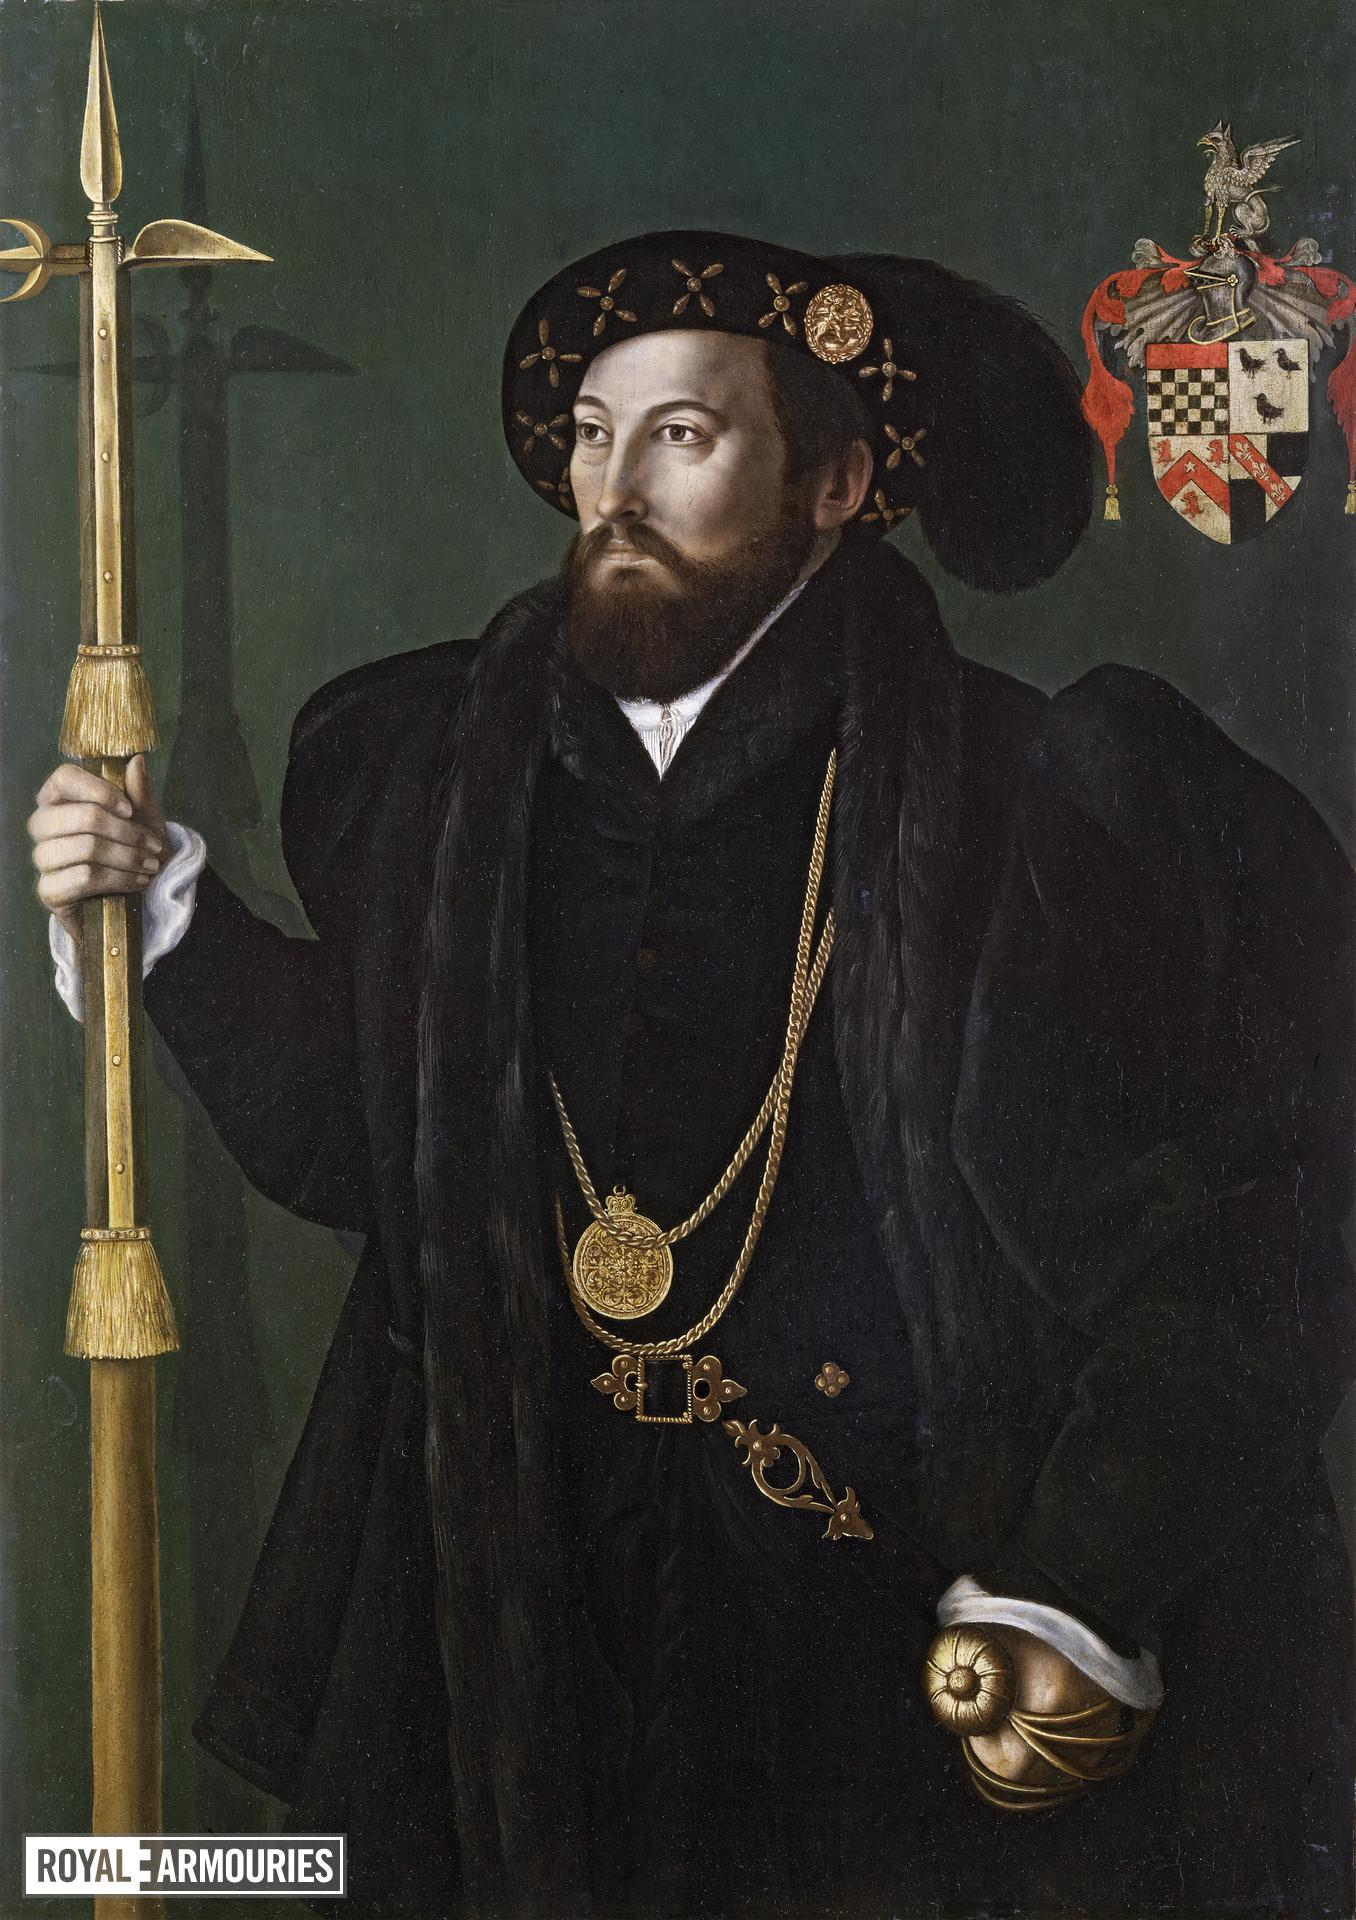 Painting - Portrait, probably William Palmer Portrait, attributed to Gerlach Flicke, of a member of the Palmer family, probably William Palmer, Gentleman Pensioner c. 1539, with a pollaxe and basket hilted sword.